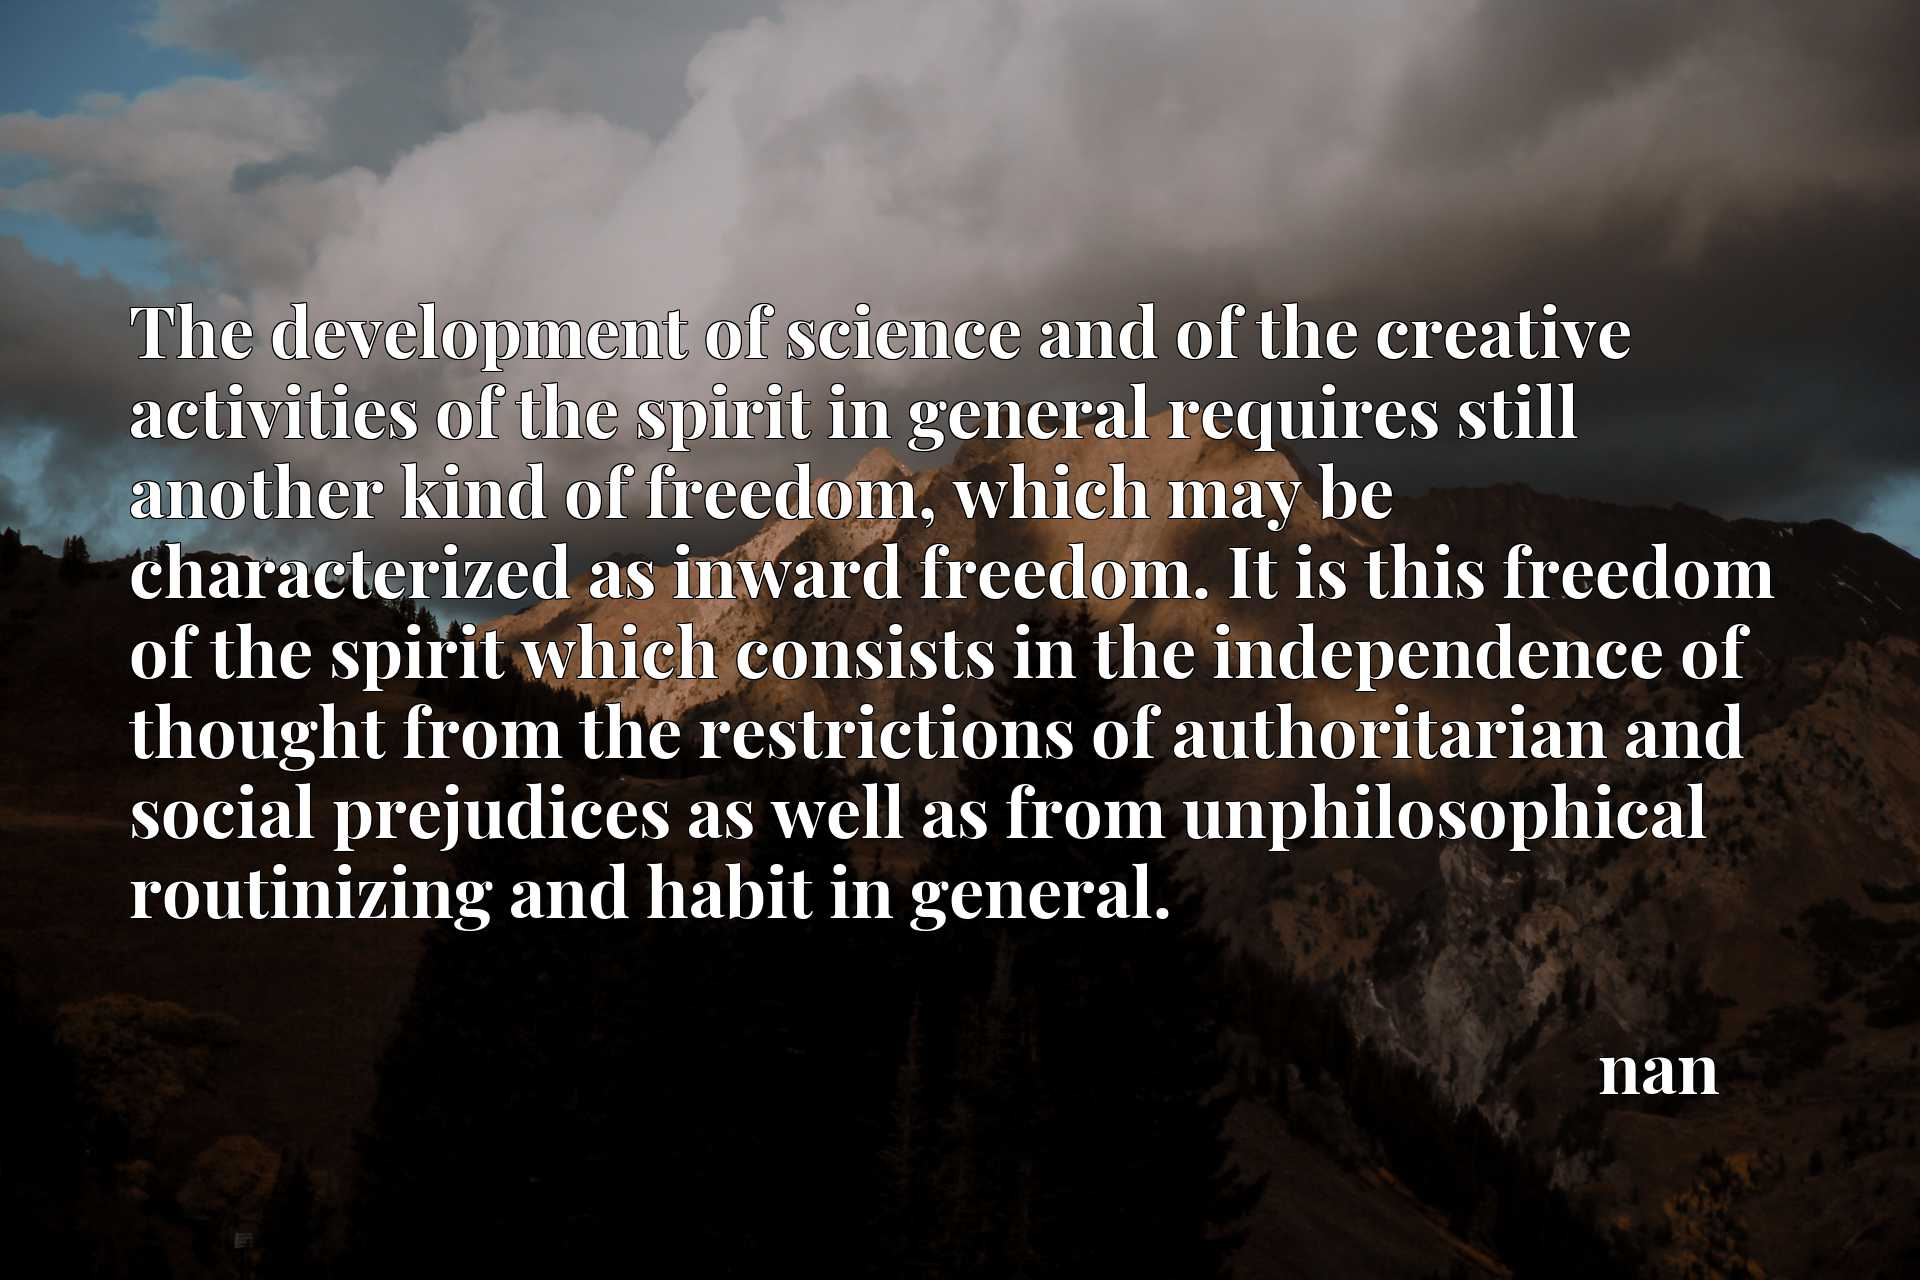 The development of science and of the creative activities of the spirit in general requires still another kind of freedom, which may be characterized as inward freedom. It is this freedom of the spirit which consists in the independence of thought from the restrictions of authoritarian and social prejudices as well as from unphilosophical routinizing and habit in general.